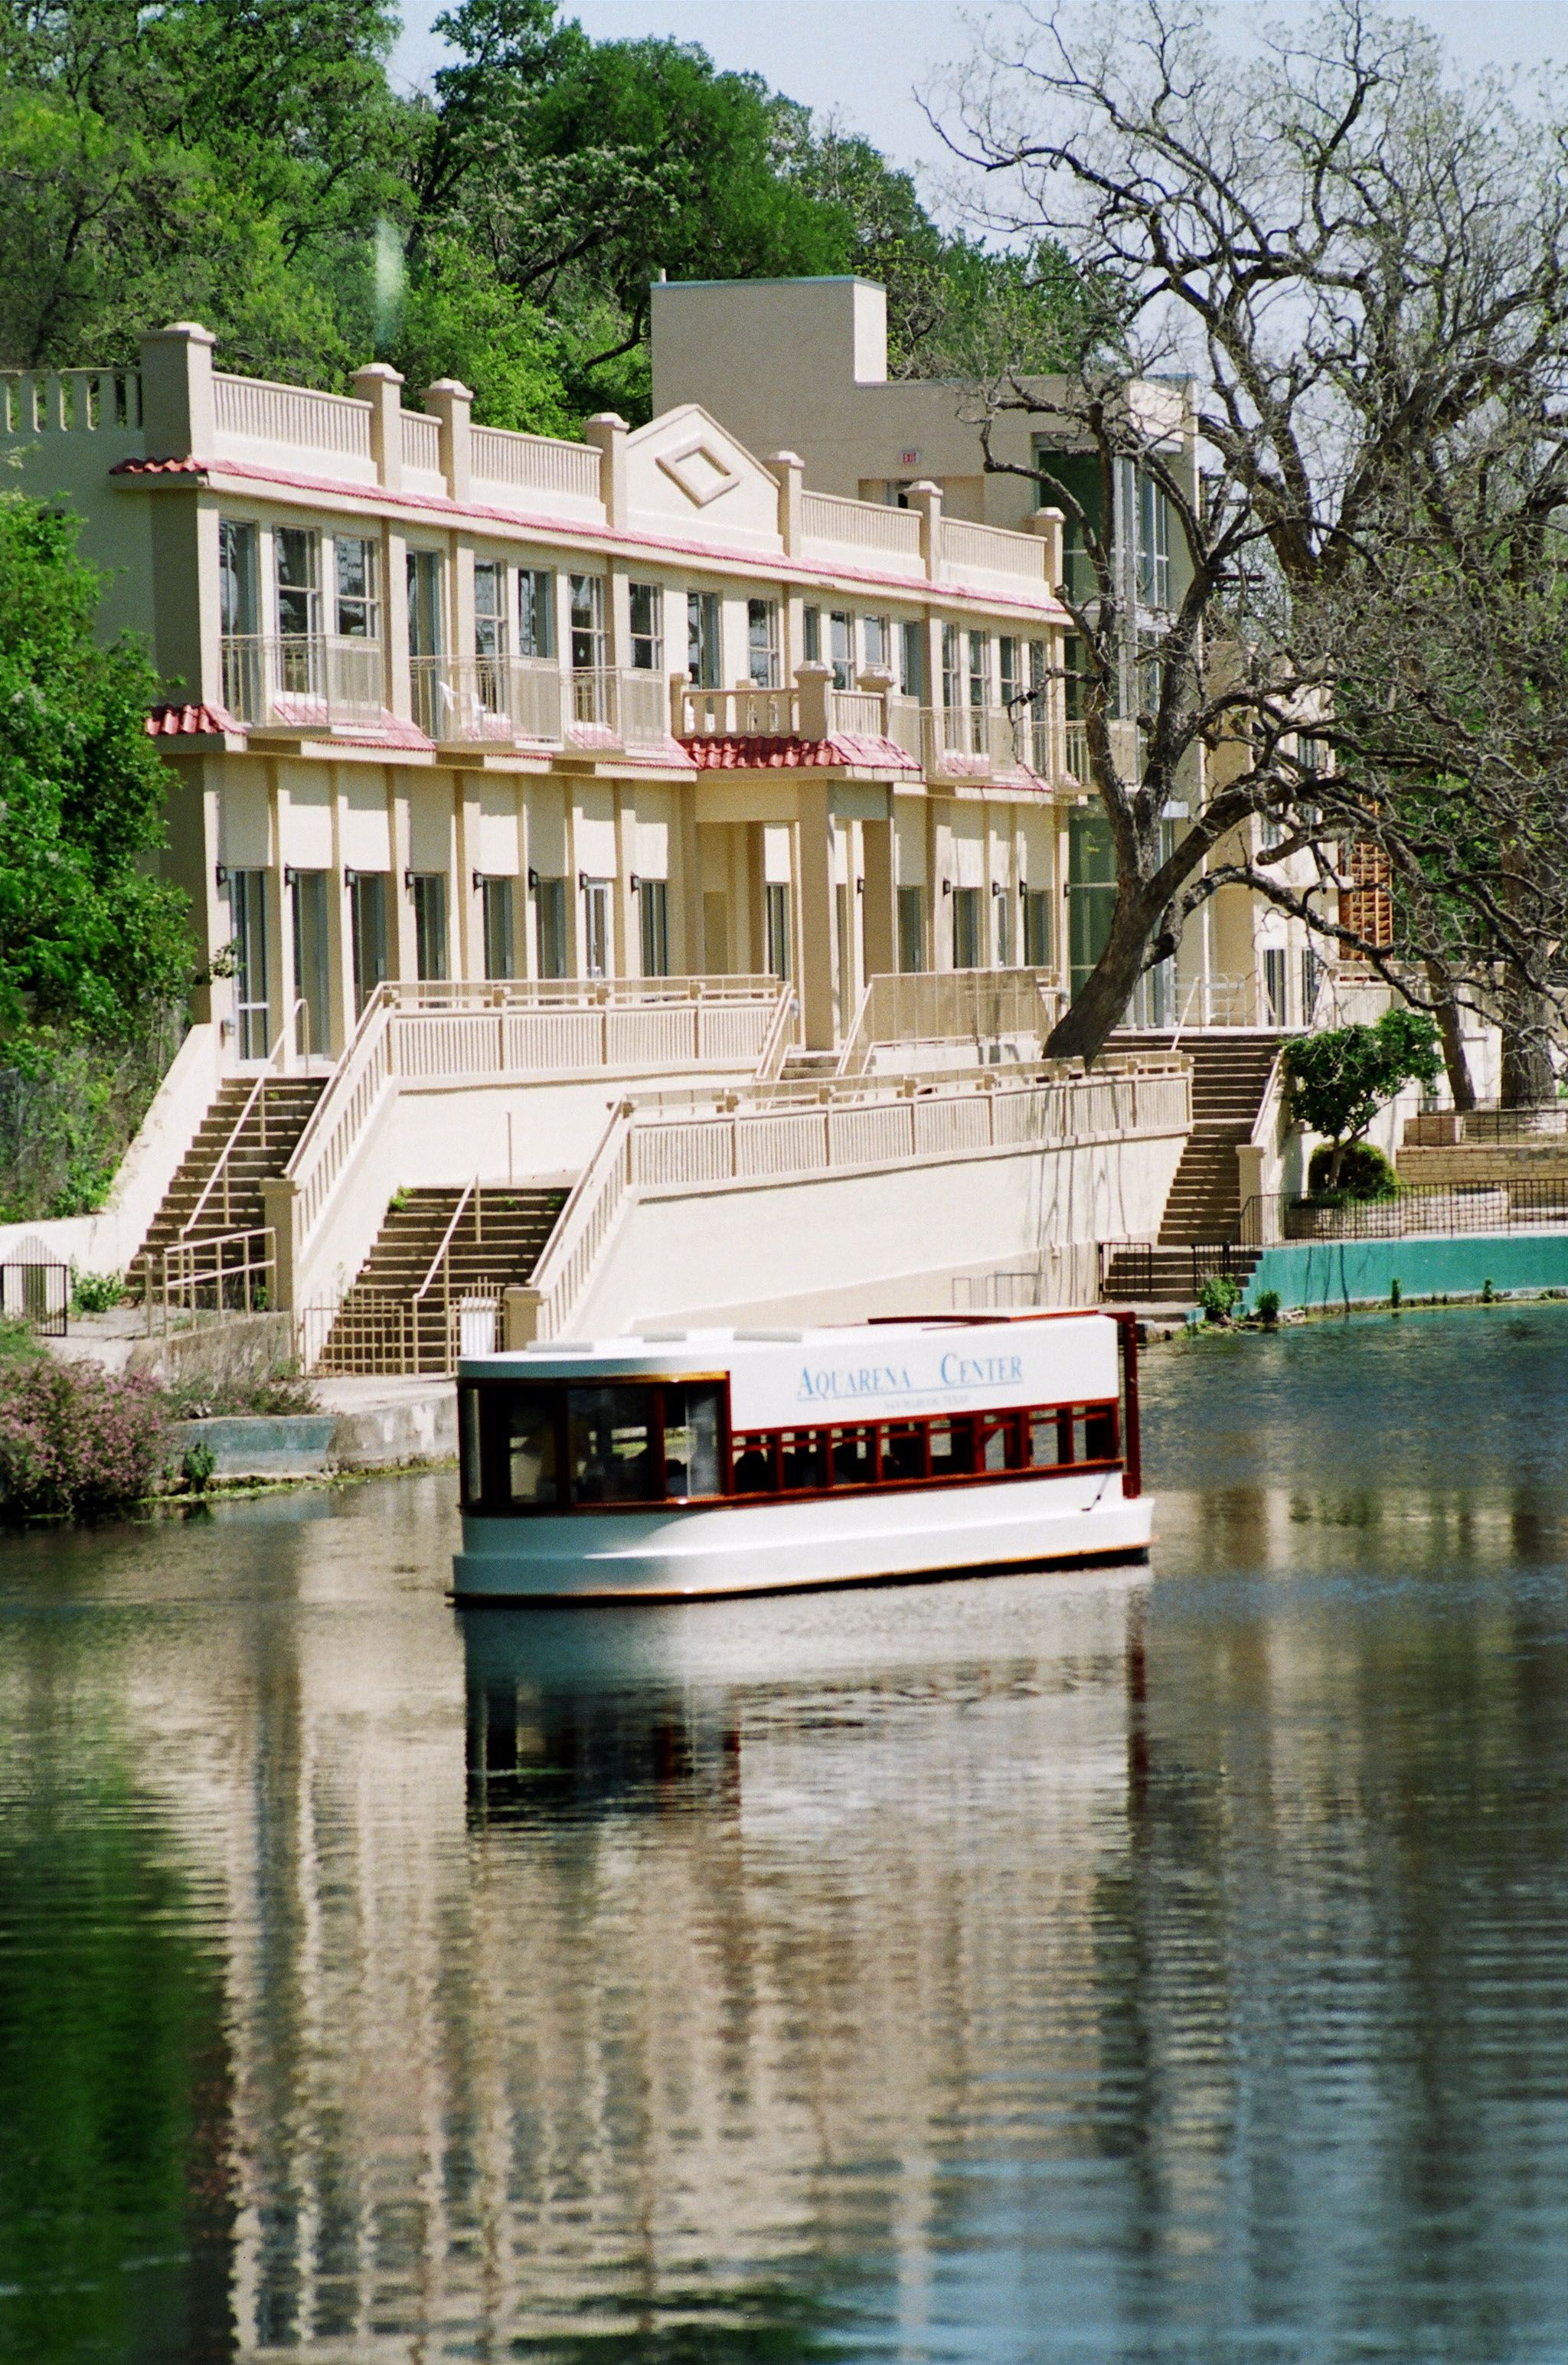 Aquarina Springs - the former hotel and glass bottom boats